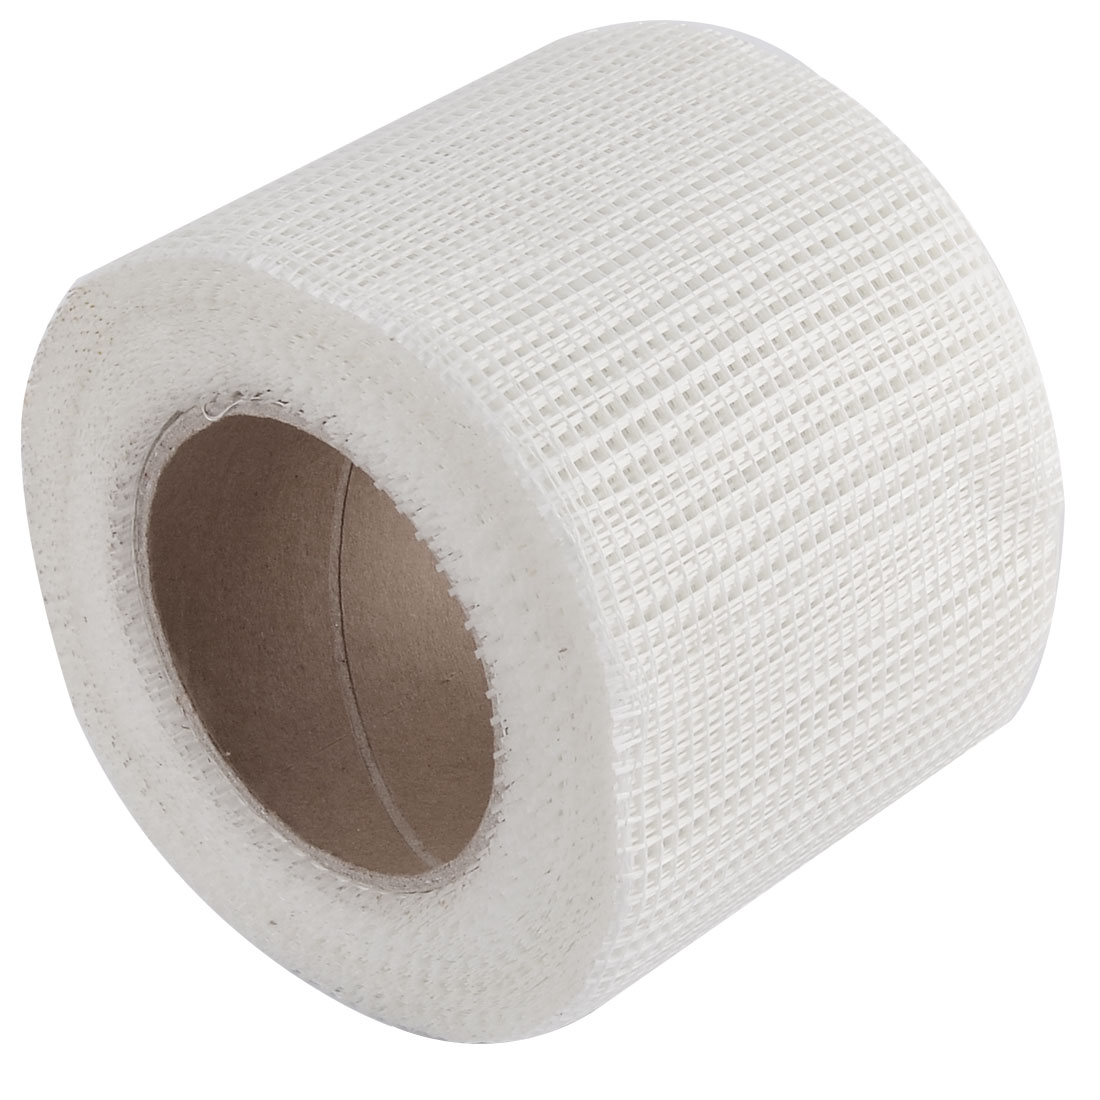 Drywall Paper Tape Unique Bargains Sheetrock Drywall Self Adhesive Mesh Wall Repair Fabric Joint Tape Roll